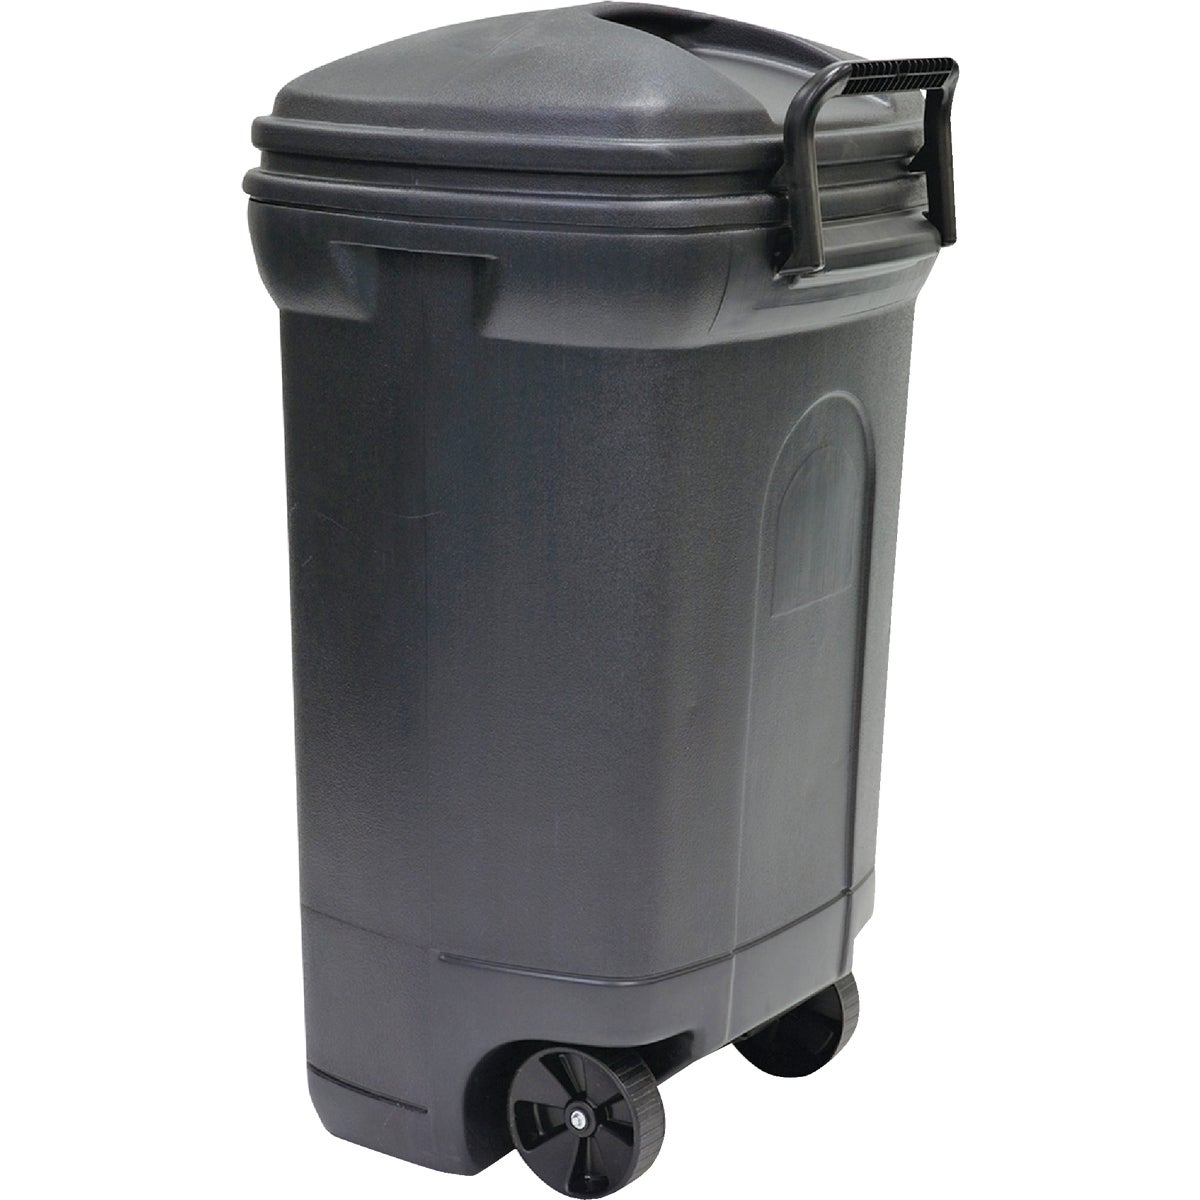 34GAL RECT TRASH CAN